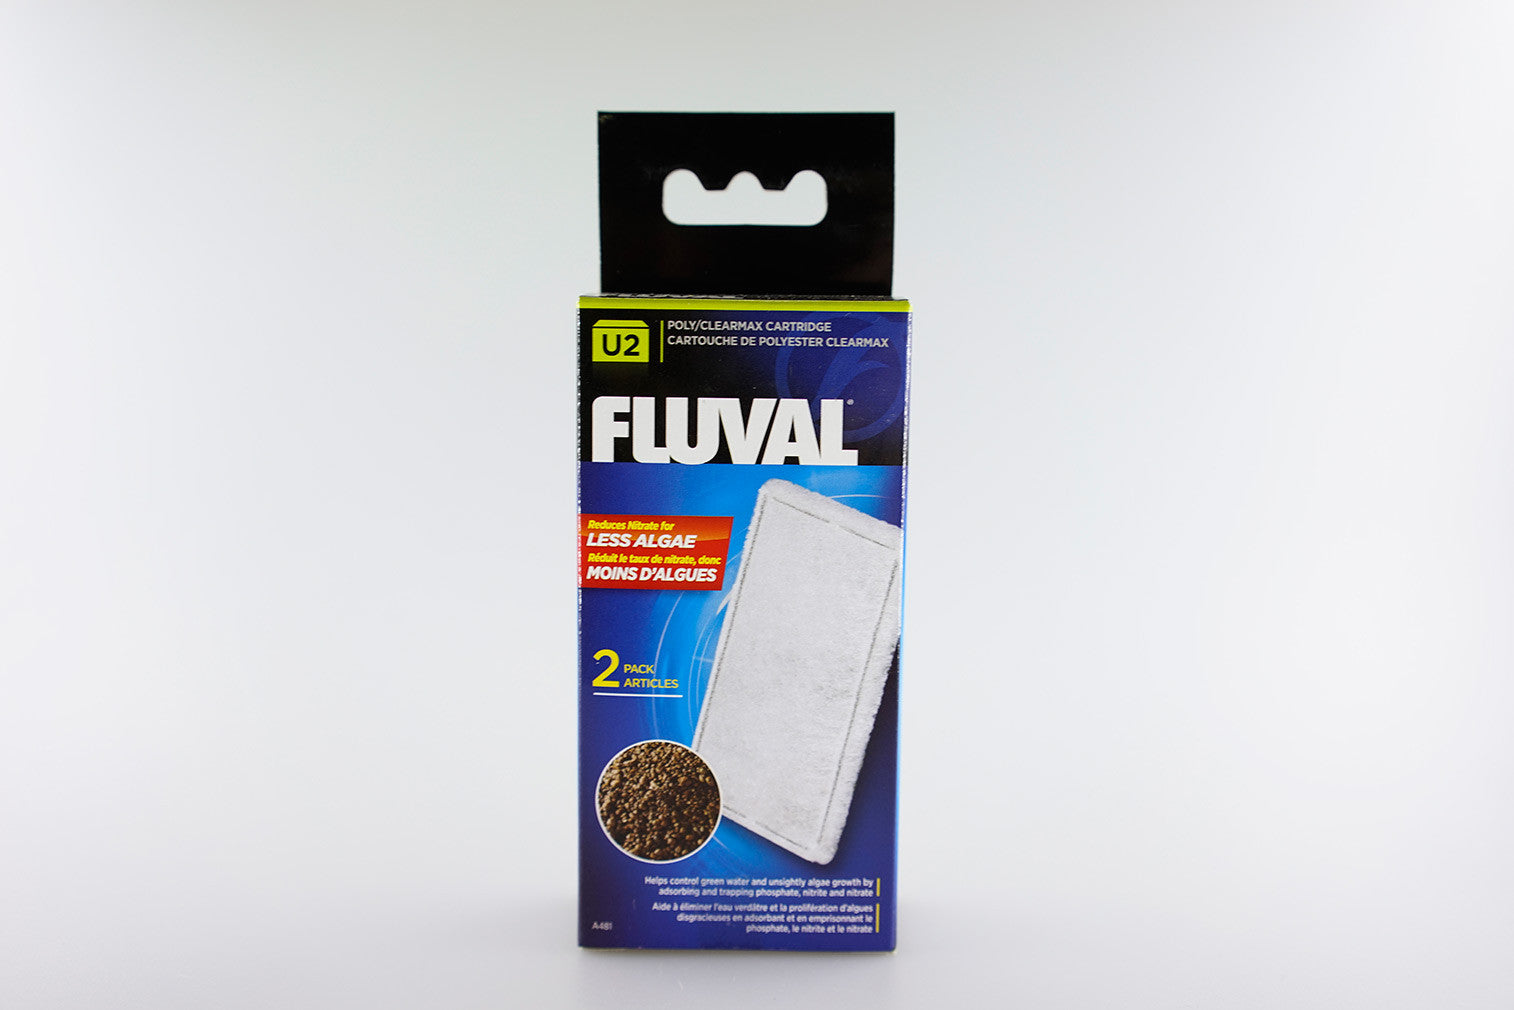 FLUVAL - U-Series Filter Media - Poly/Clearmax Catridge